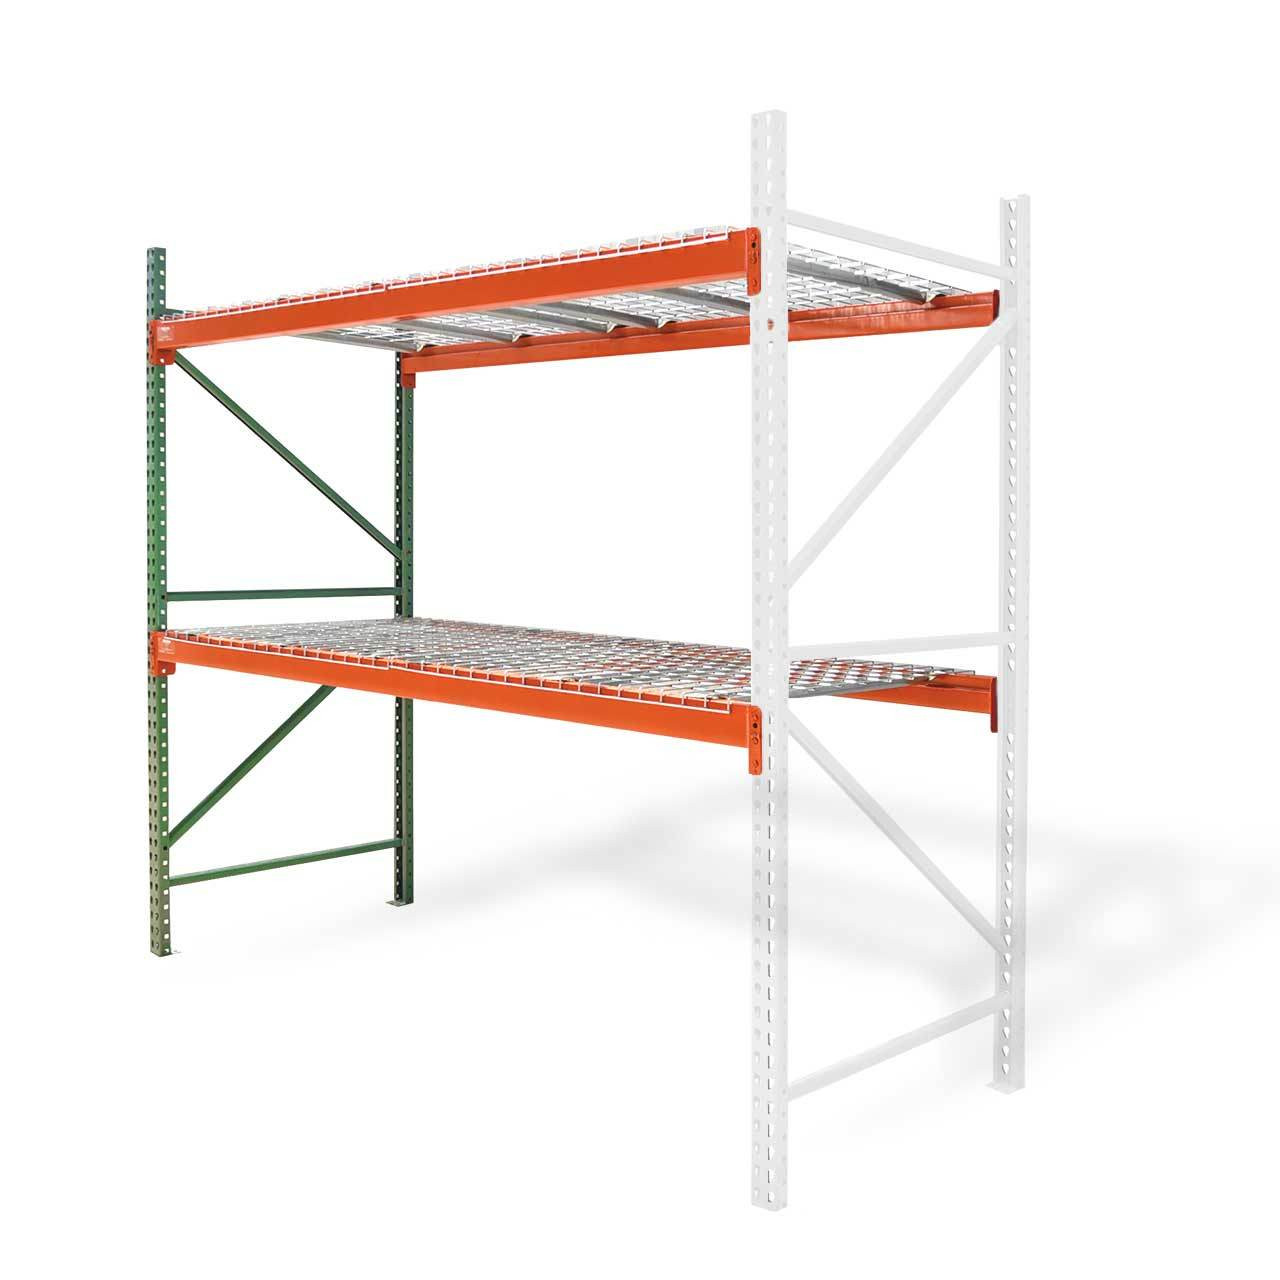 Pallet racking adder kit with wire decking